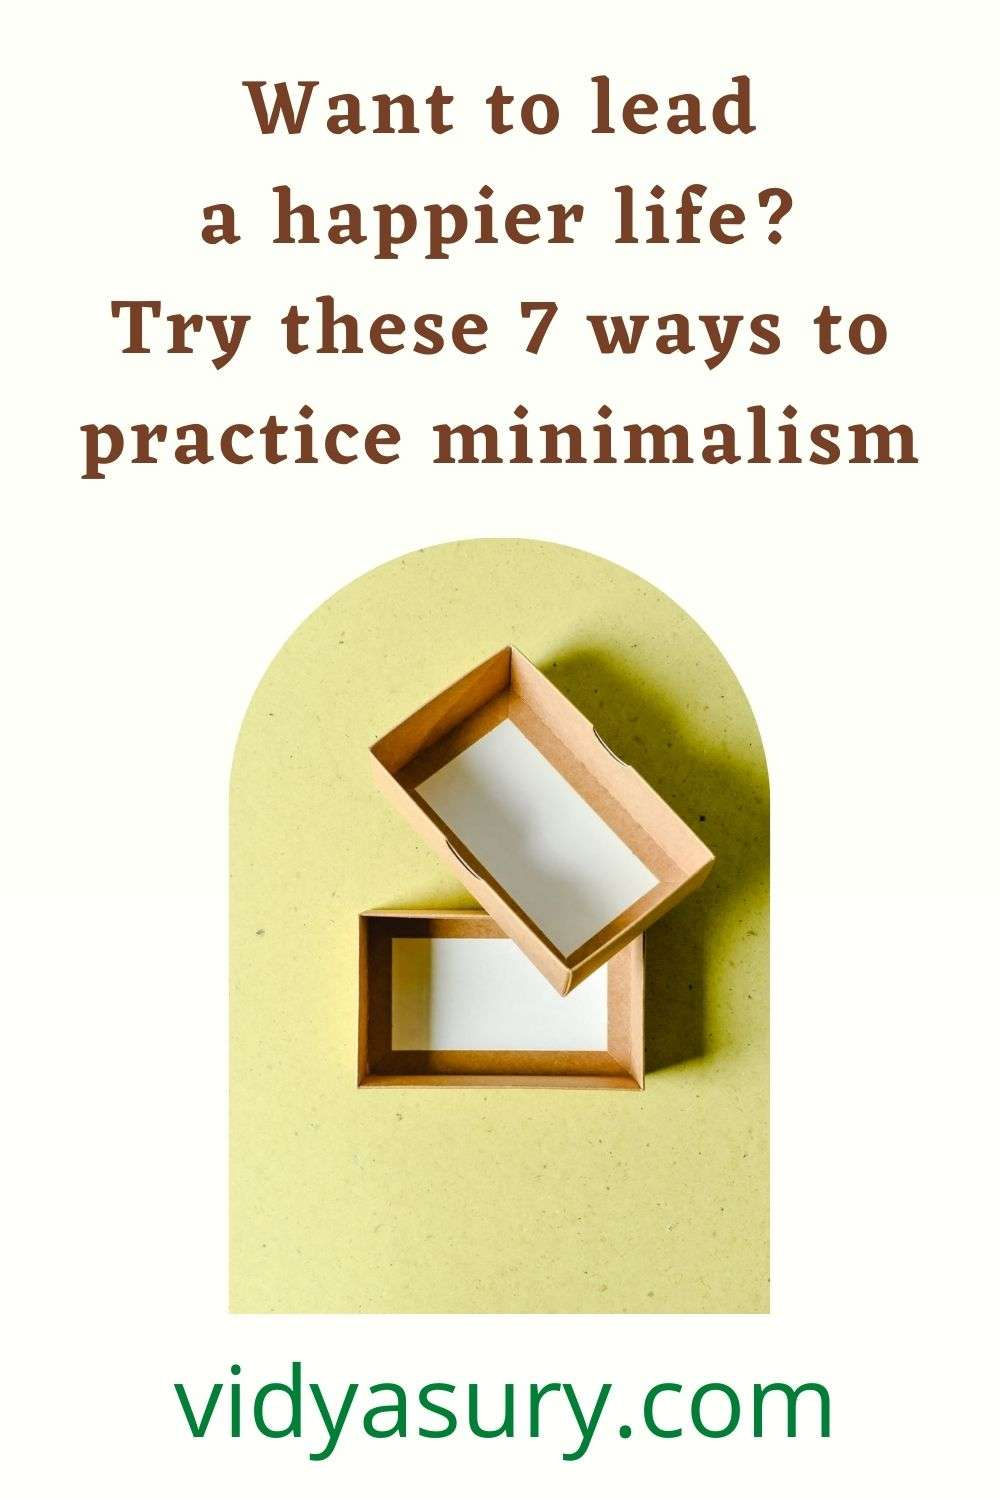 Want to lead a happier life? Try these 7 ways to practice minimalism